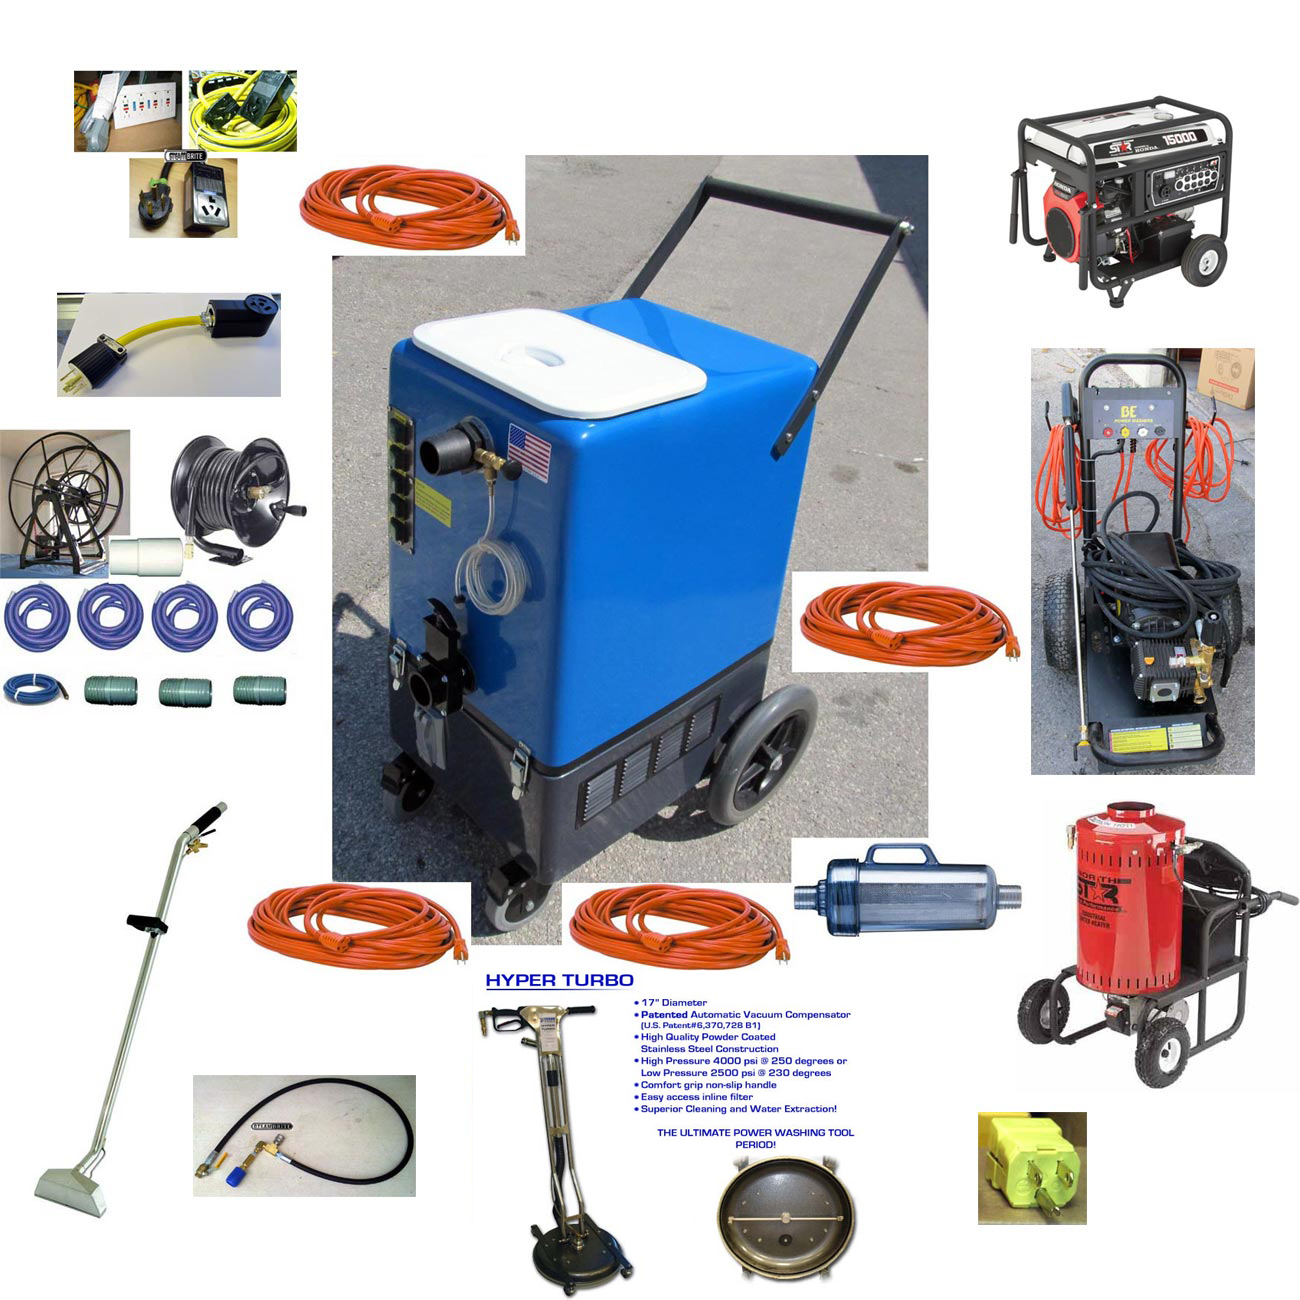 -DriStorm Goliath Quad 6.6 Flood Pumper 26gal STARTER PACKAGE 22.1Hp 2100psi Live Steam Pressure Washer Recovery 120v Synergistic